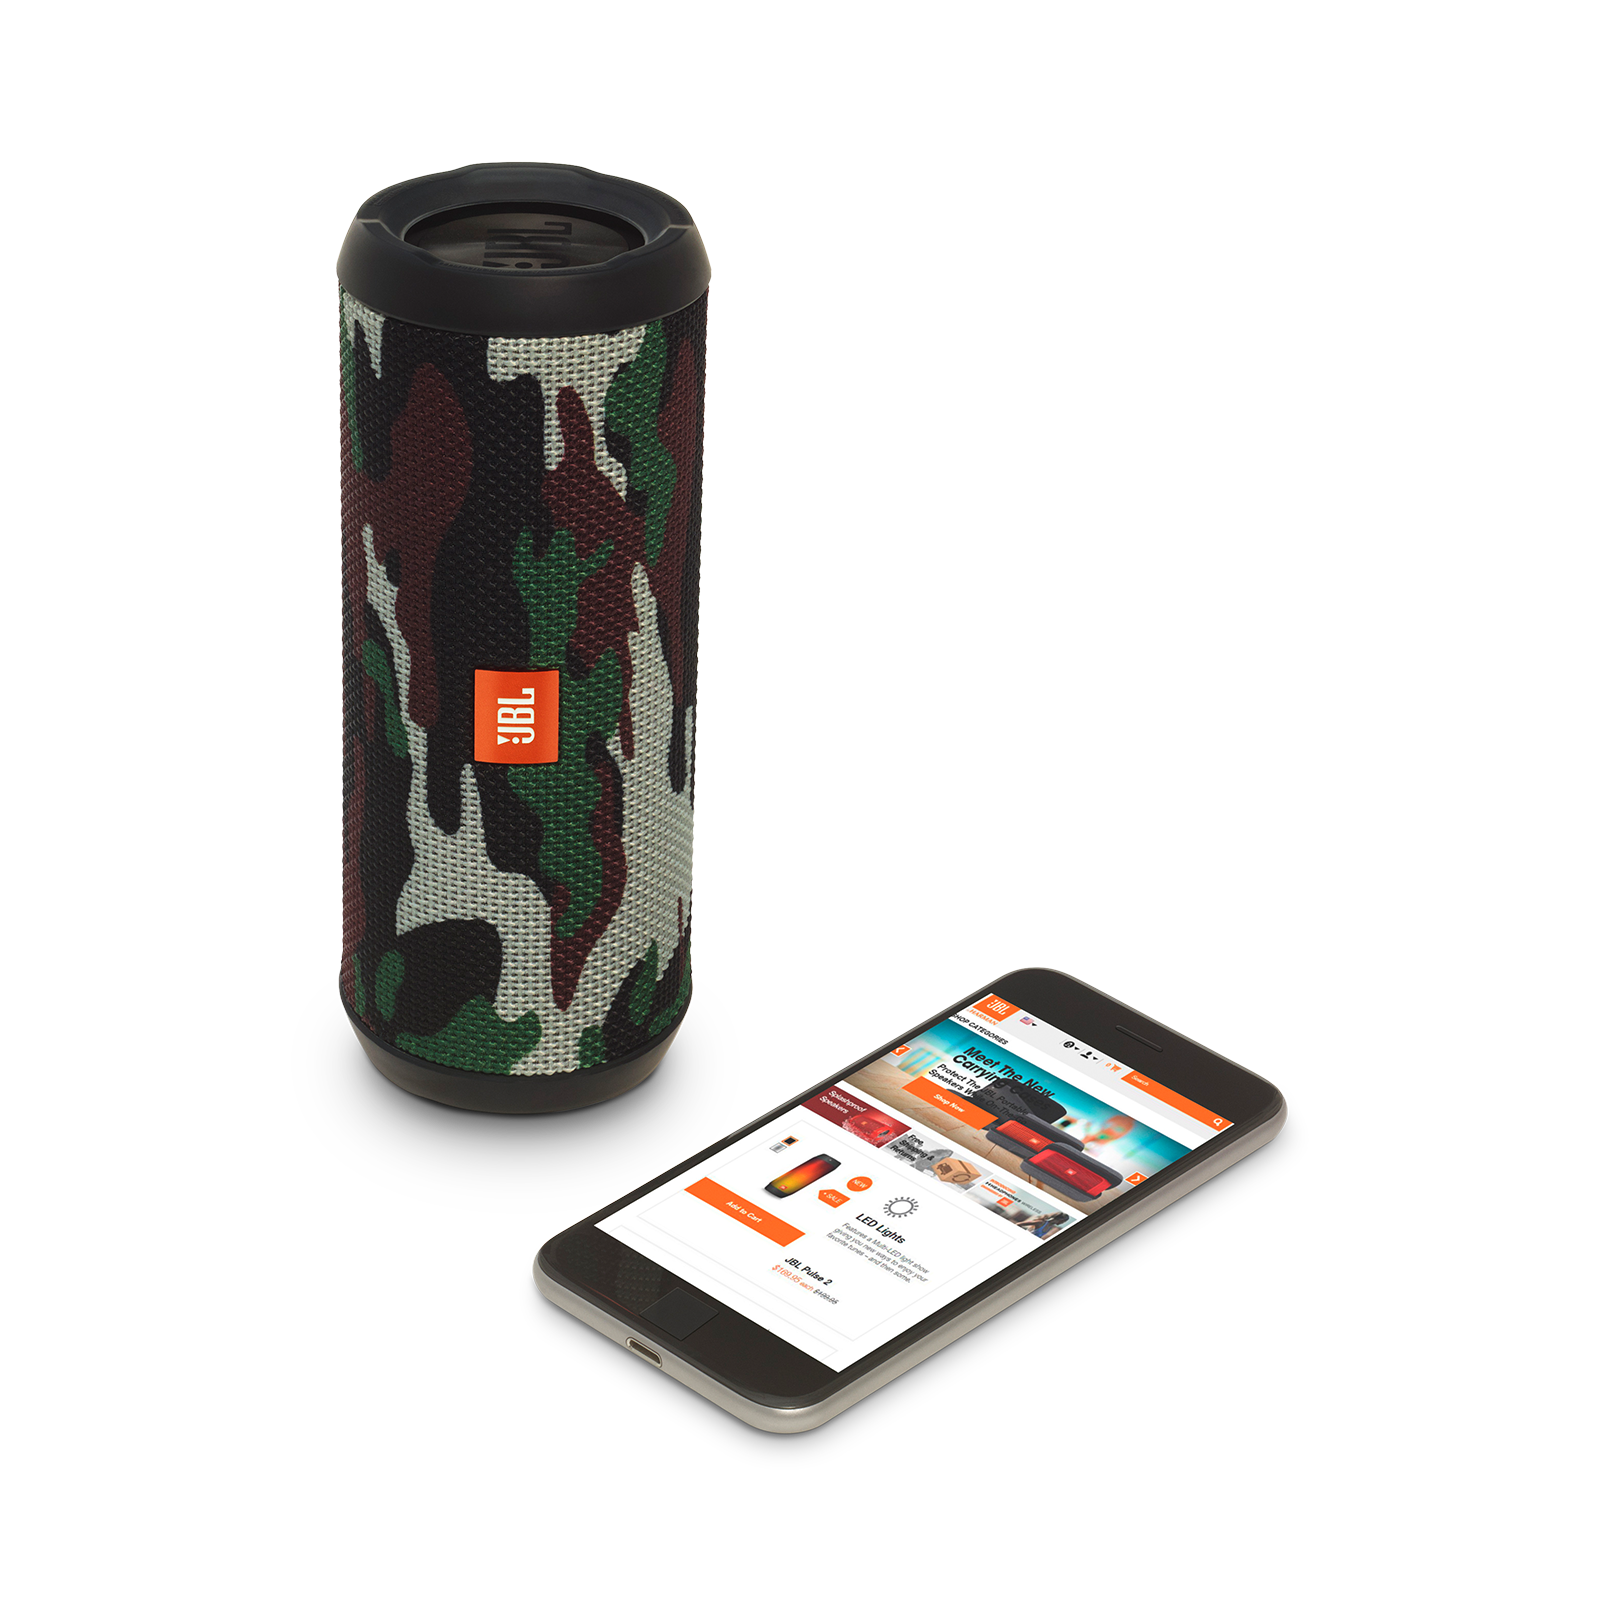 JBL Flip 3 Special Edition - Squad - Splashproof portable Bluetooth speaker with powerful sound and speakerphone technology - Detailshot 1